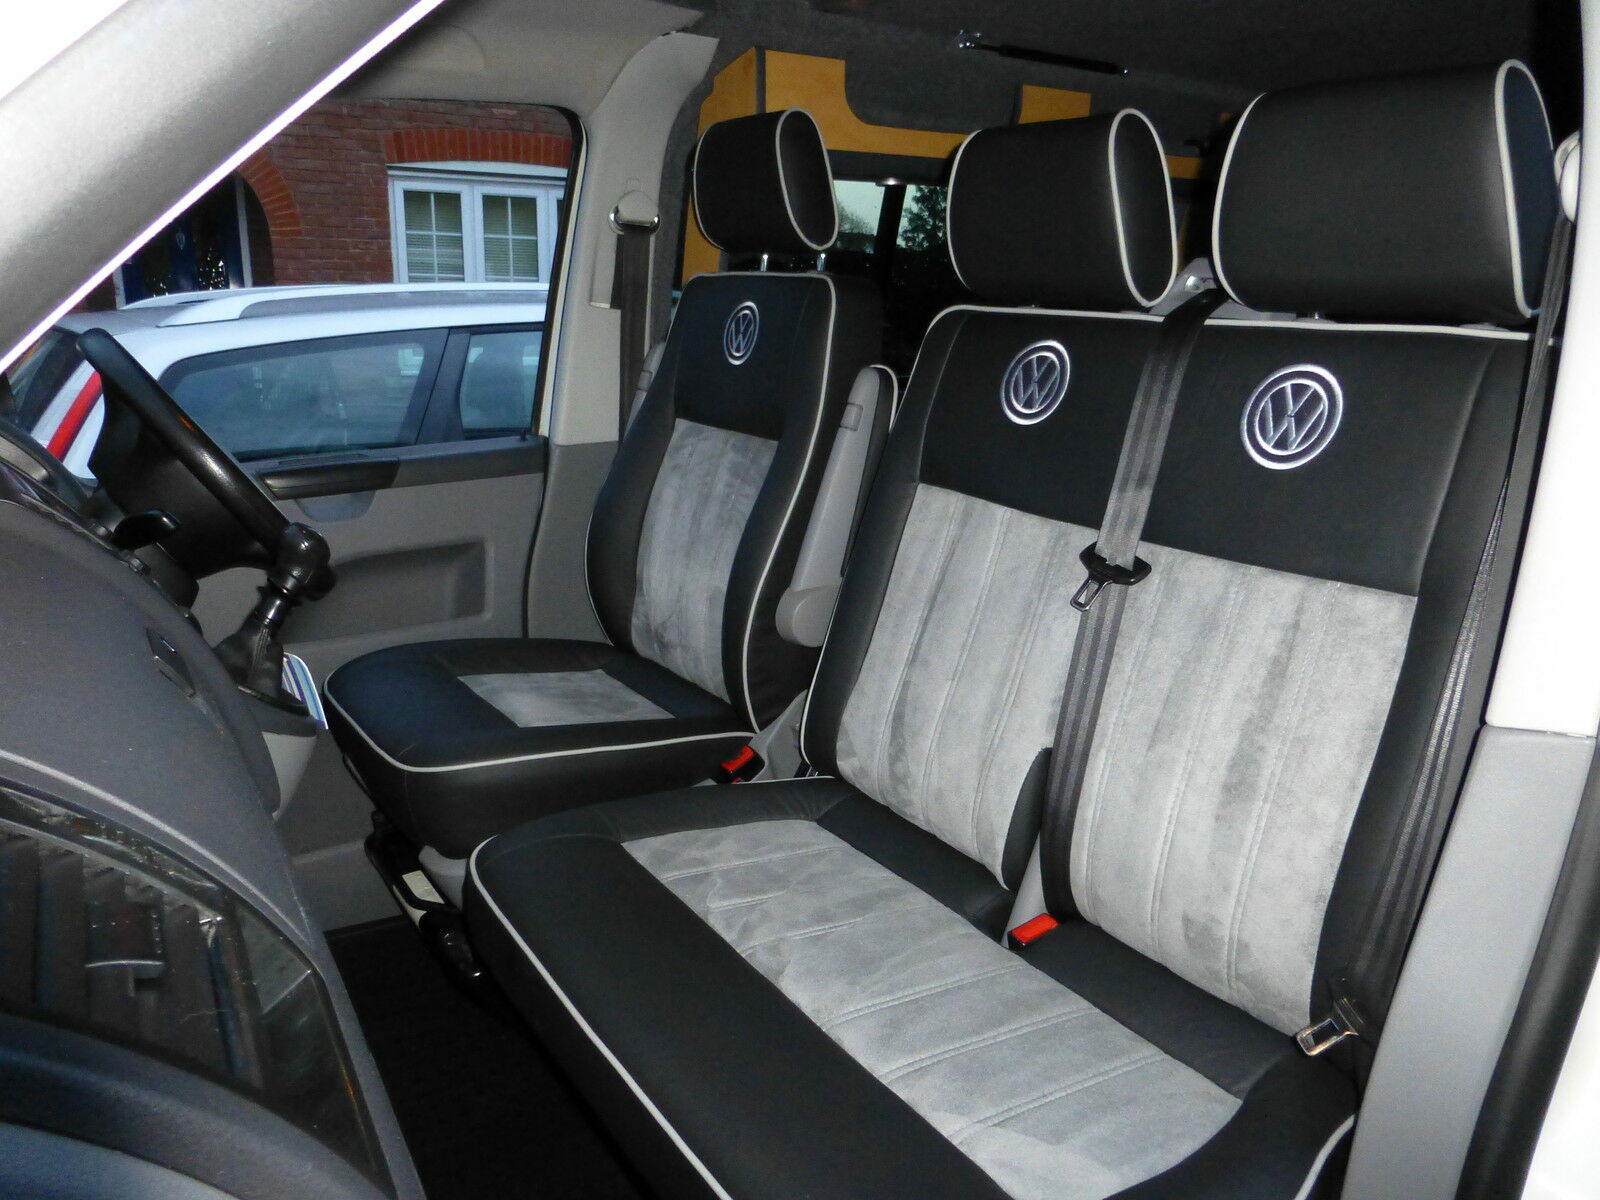 Vw Transporter T5 2 Captains Qualit Alcantara And Leather